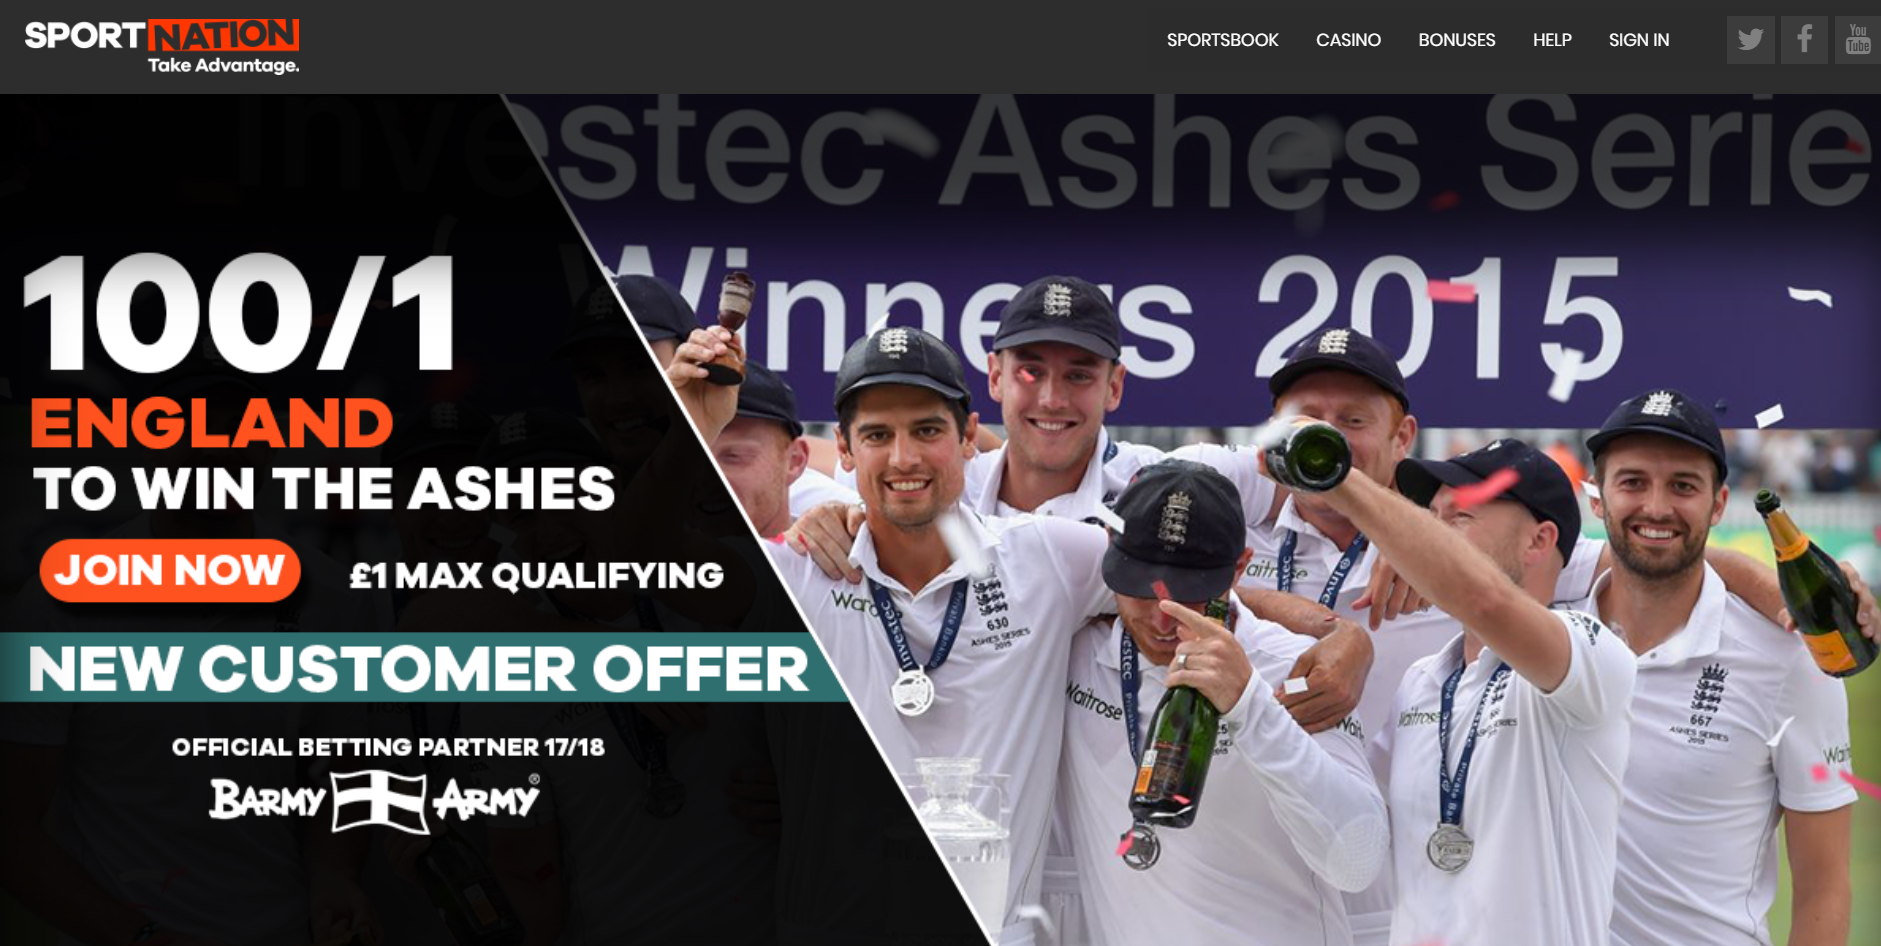 England 100/1 to win Ashes Test